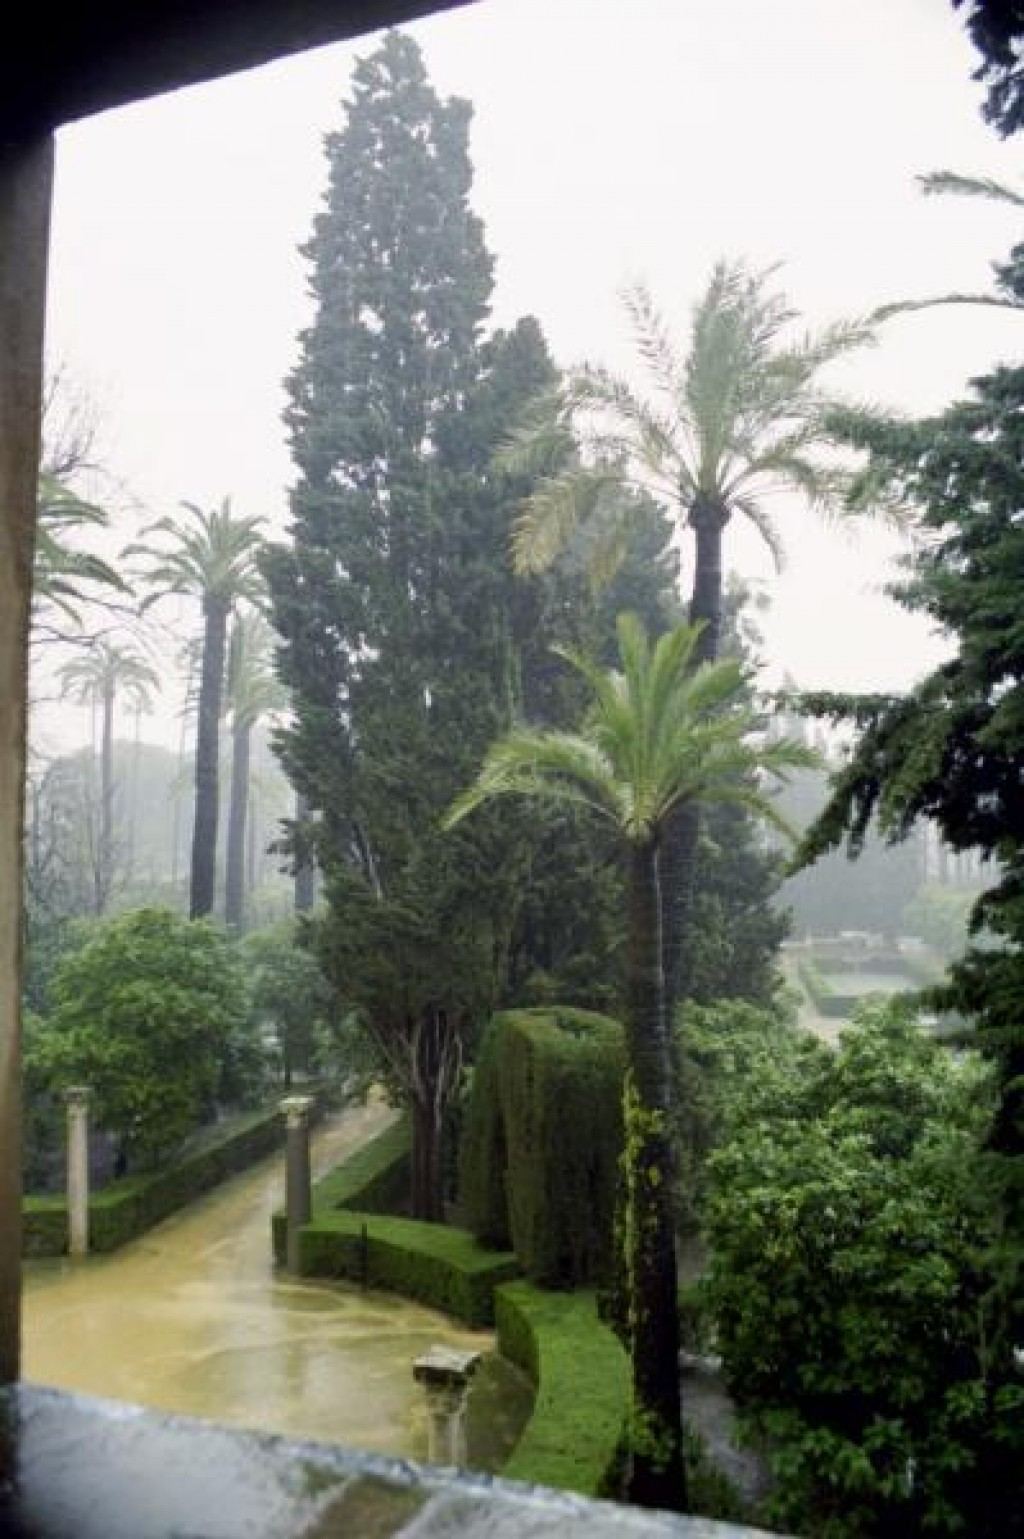 We arrived in Seville in pouring rain.  Unfortunately, it never stopped while we were there.